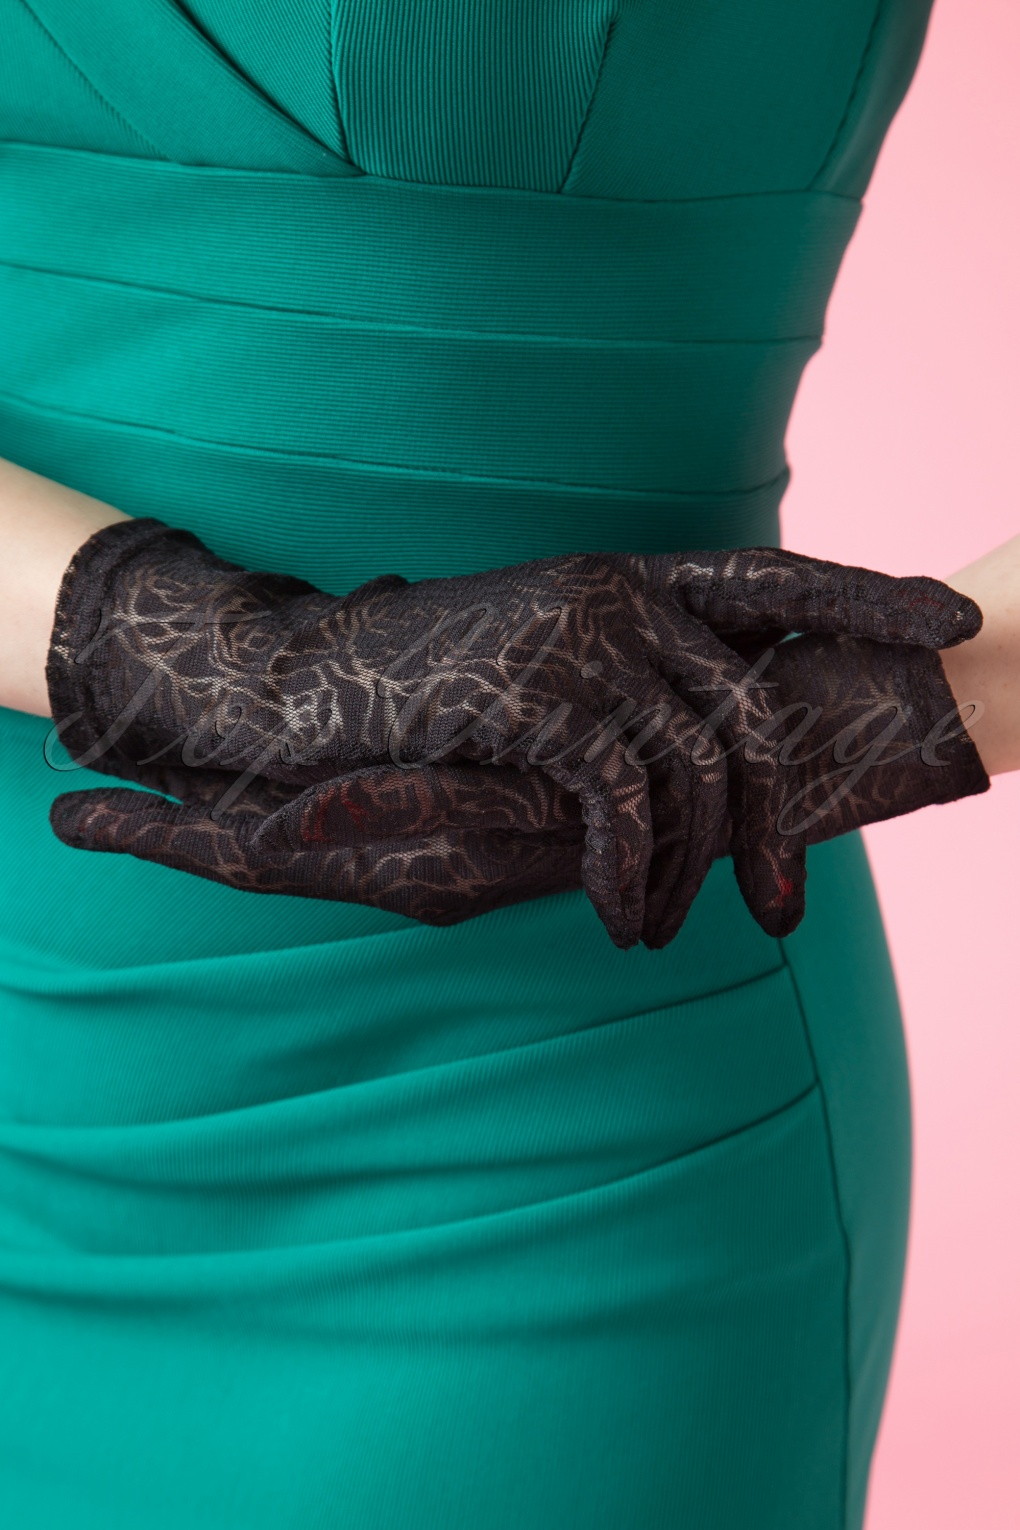 Vintage Style Gloves- Long, Wrist, Evening, Day, Leather, Lace 50s Rosy Romantic Black Lace Gloves £22.01 AT vintagedancer.com